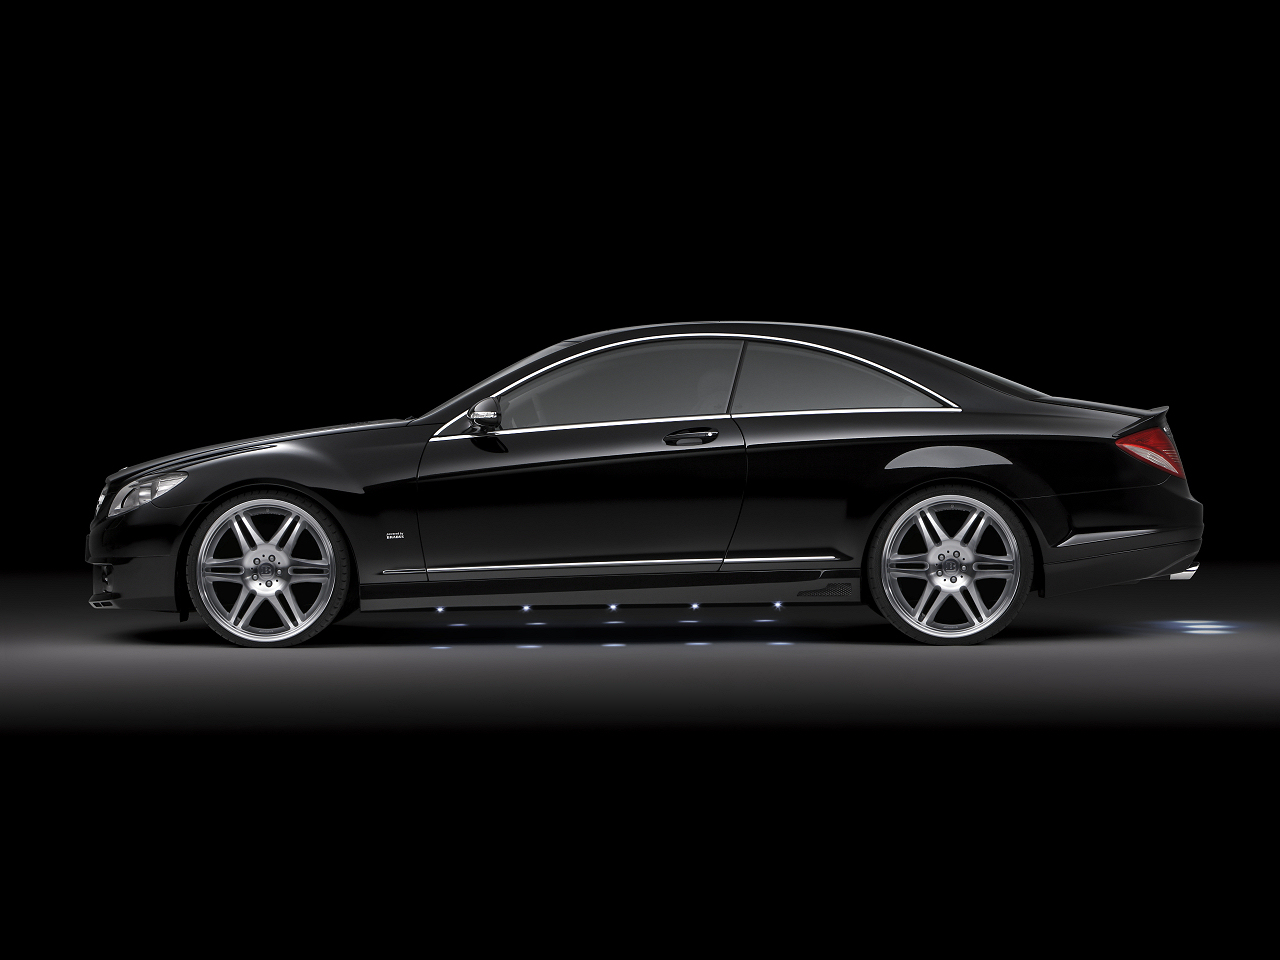 S-class with 22 inch wheels by Brabus